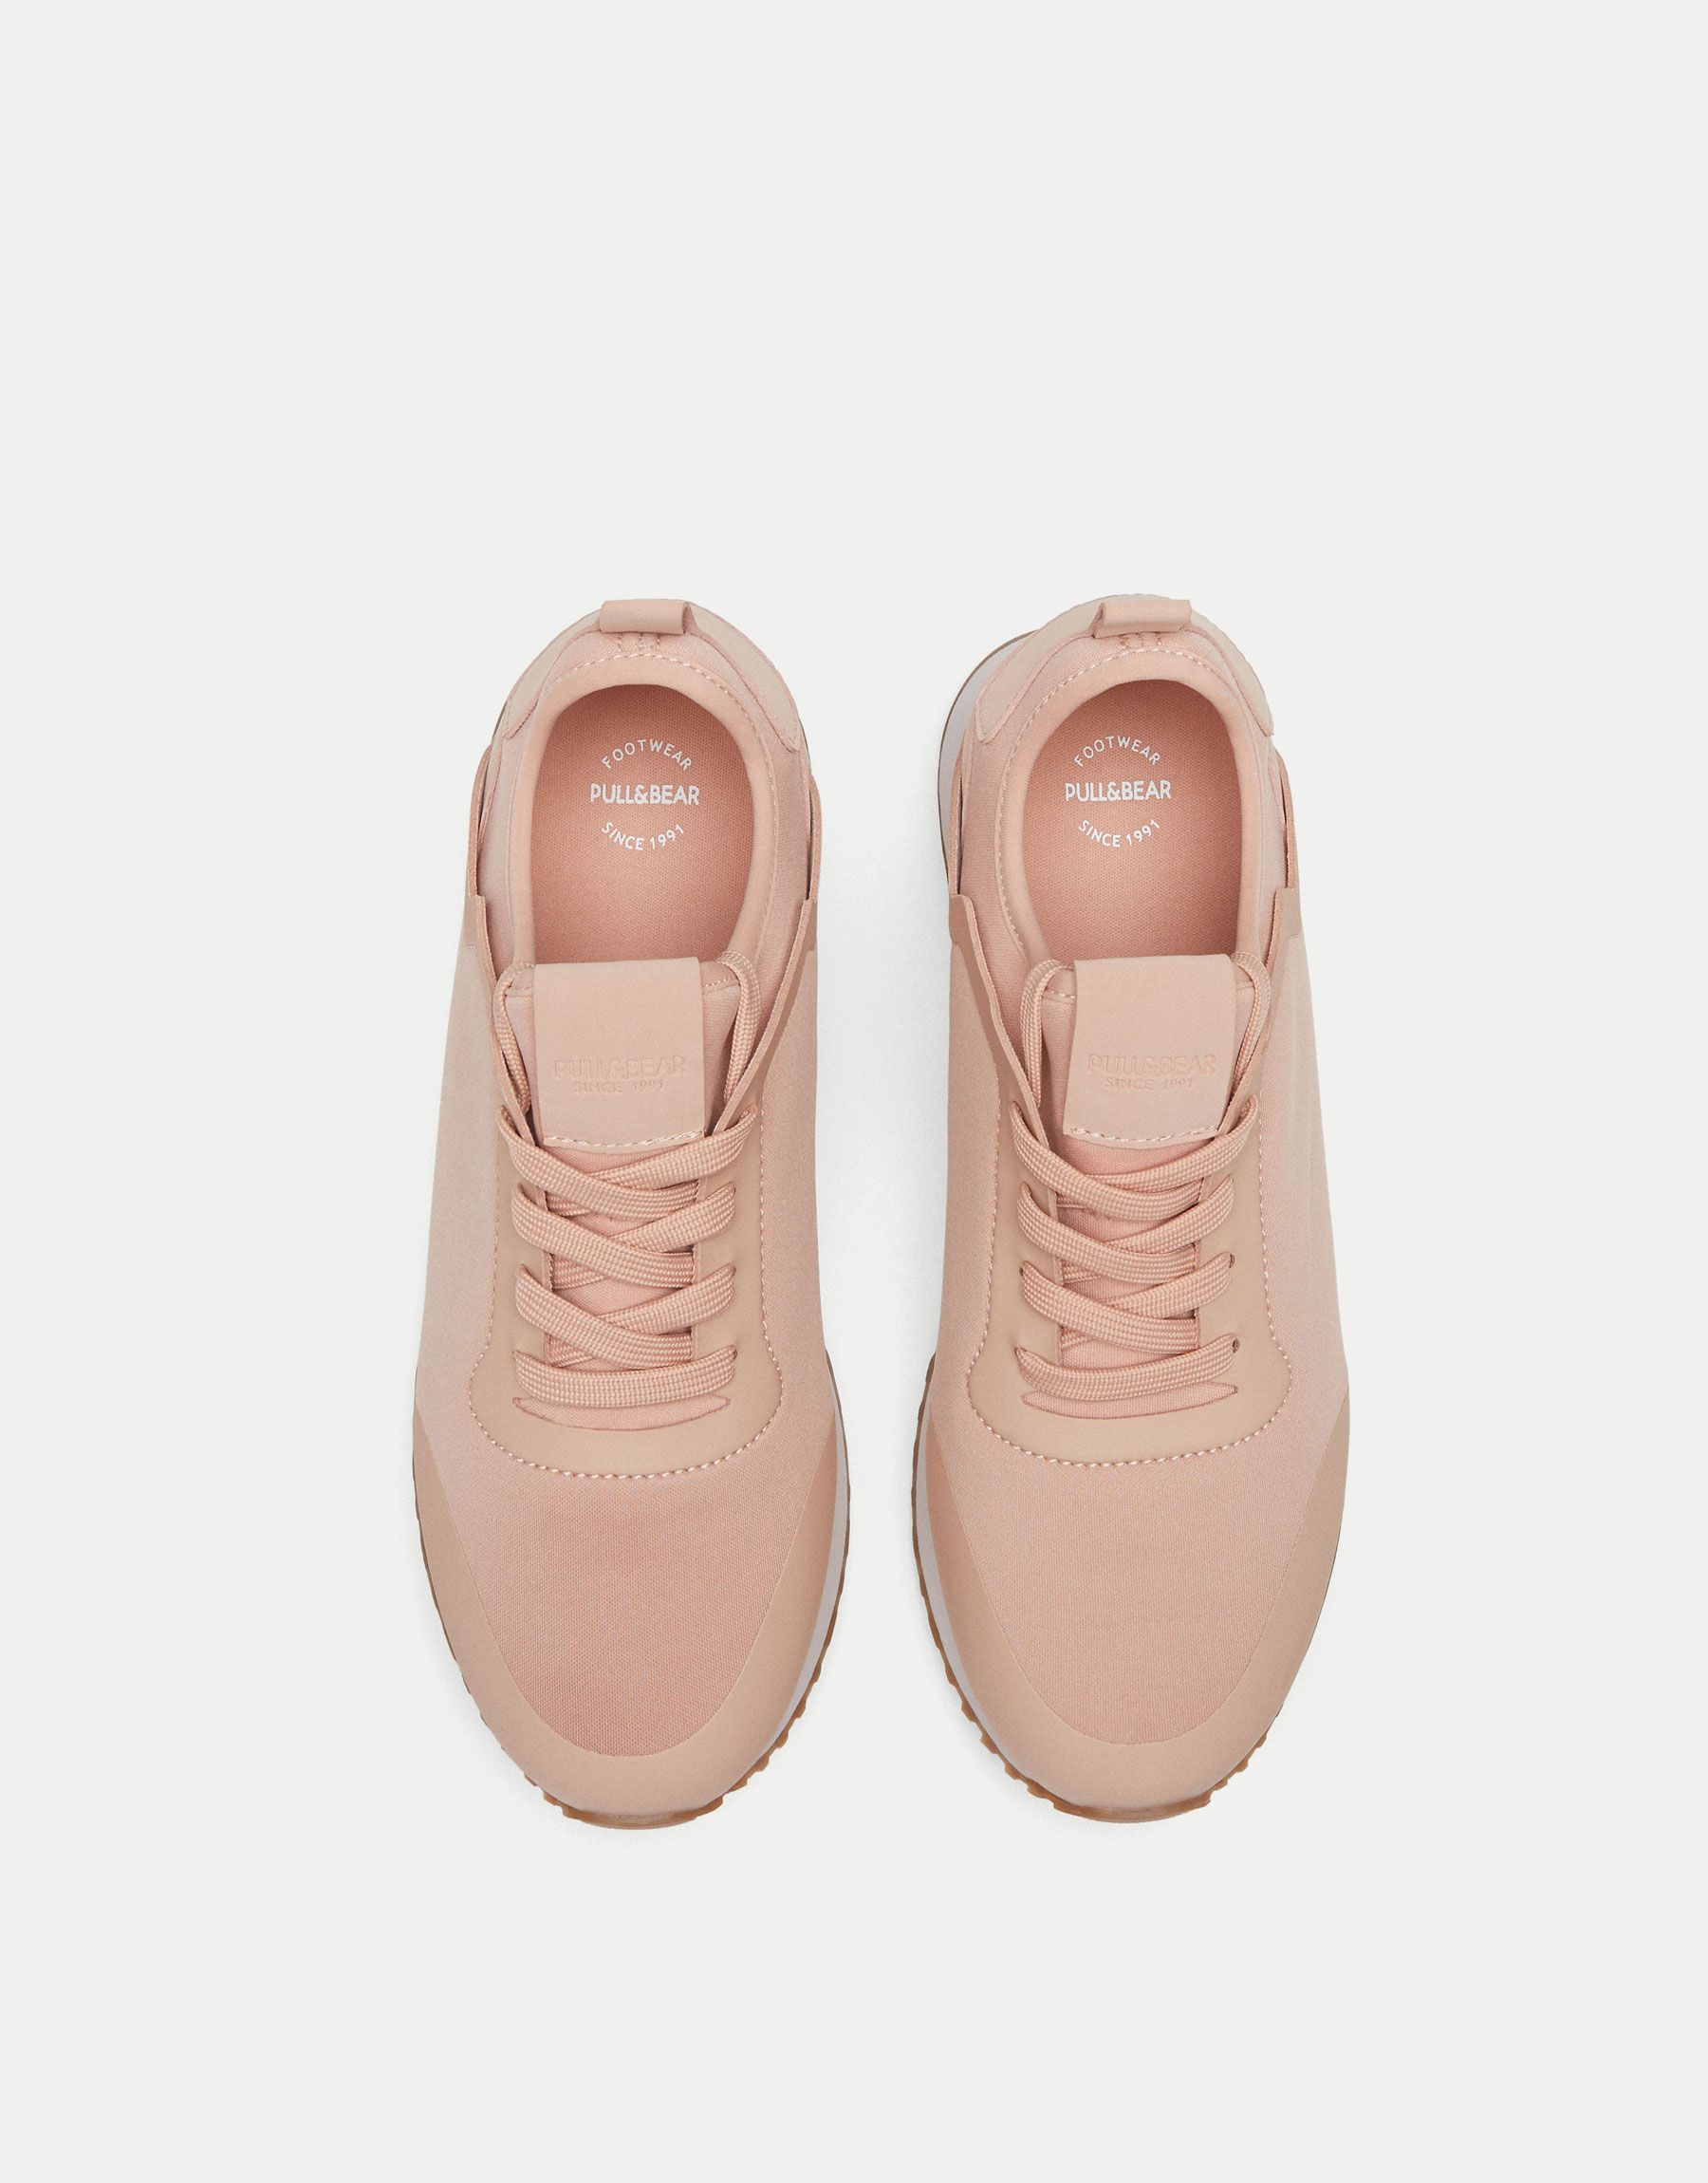 separation shoes 86236 db3a9 Street sneakers - See all - Shoes - Woman - PULL BEAR Serbia